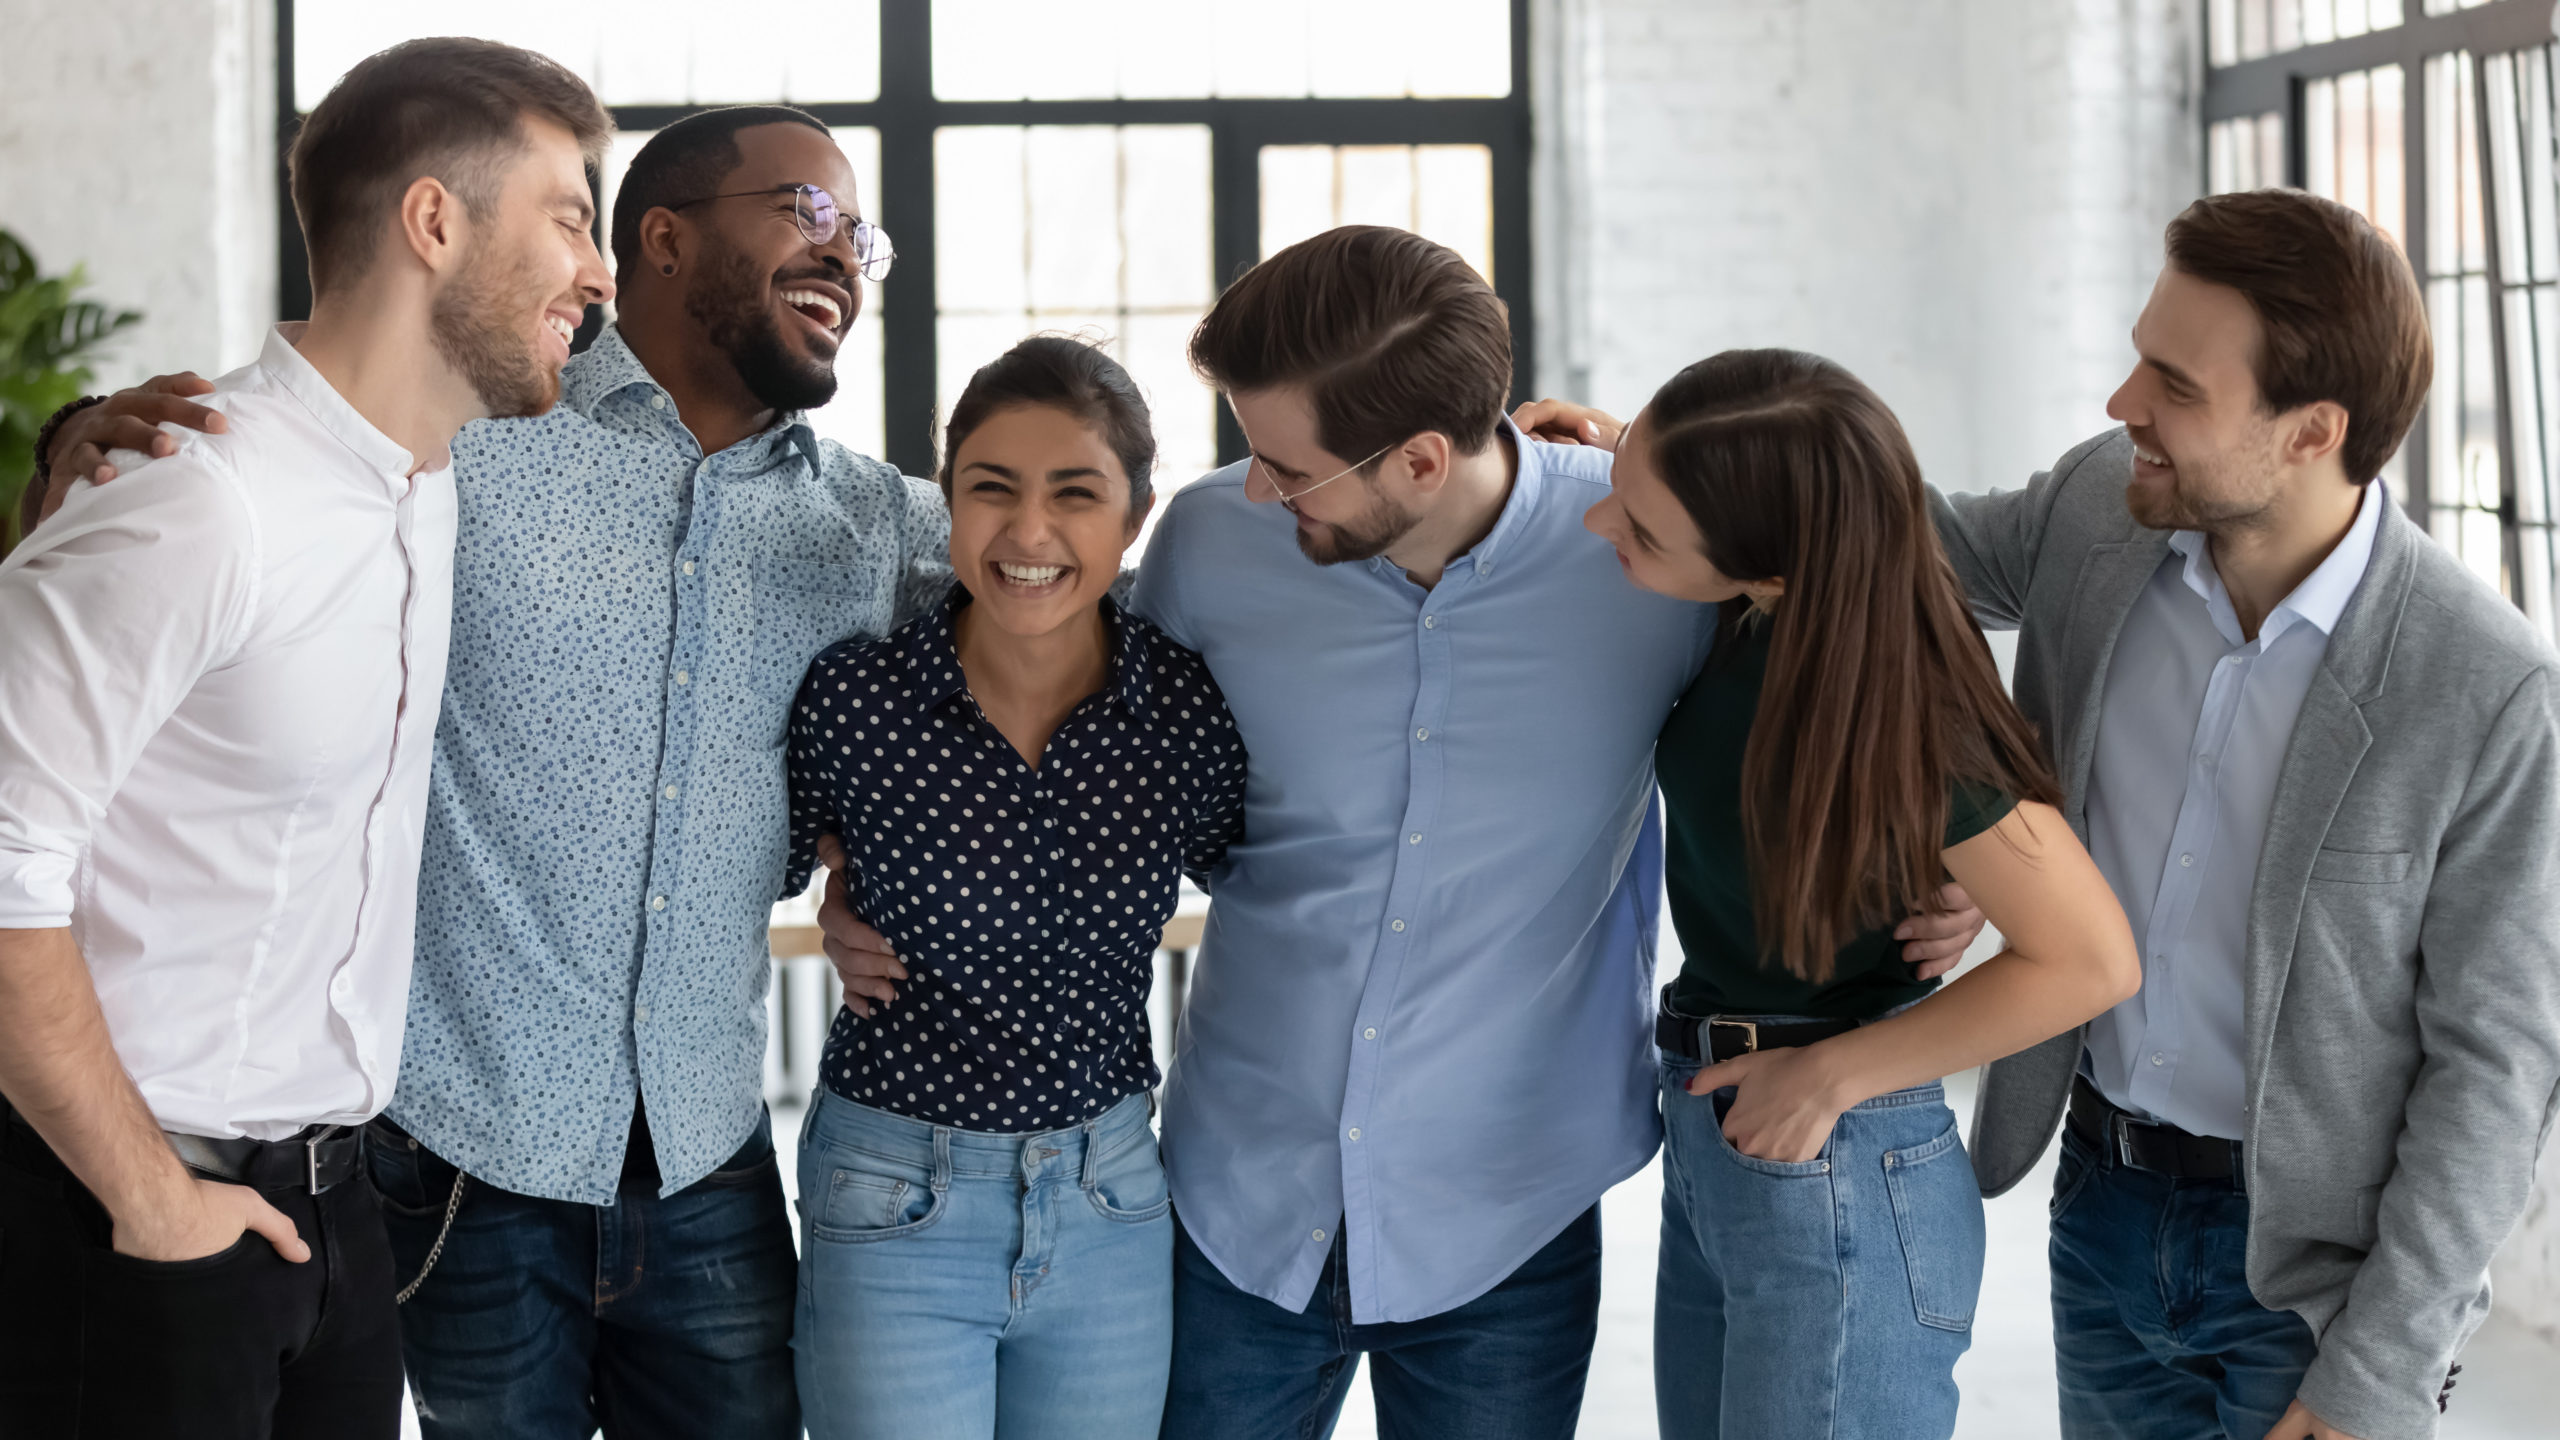 4 Team Engagement Activities You Haven't Already Tried